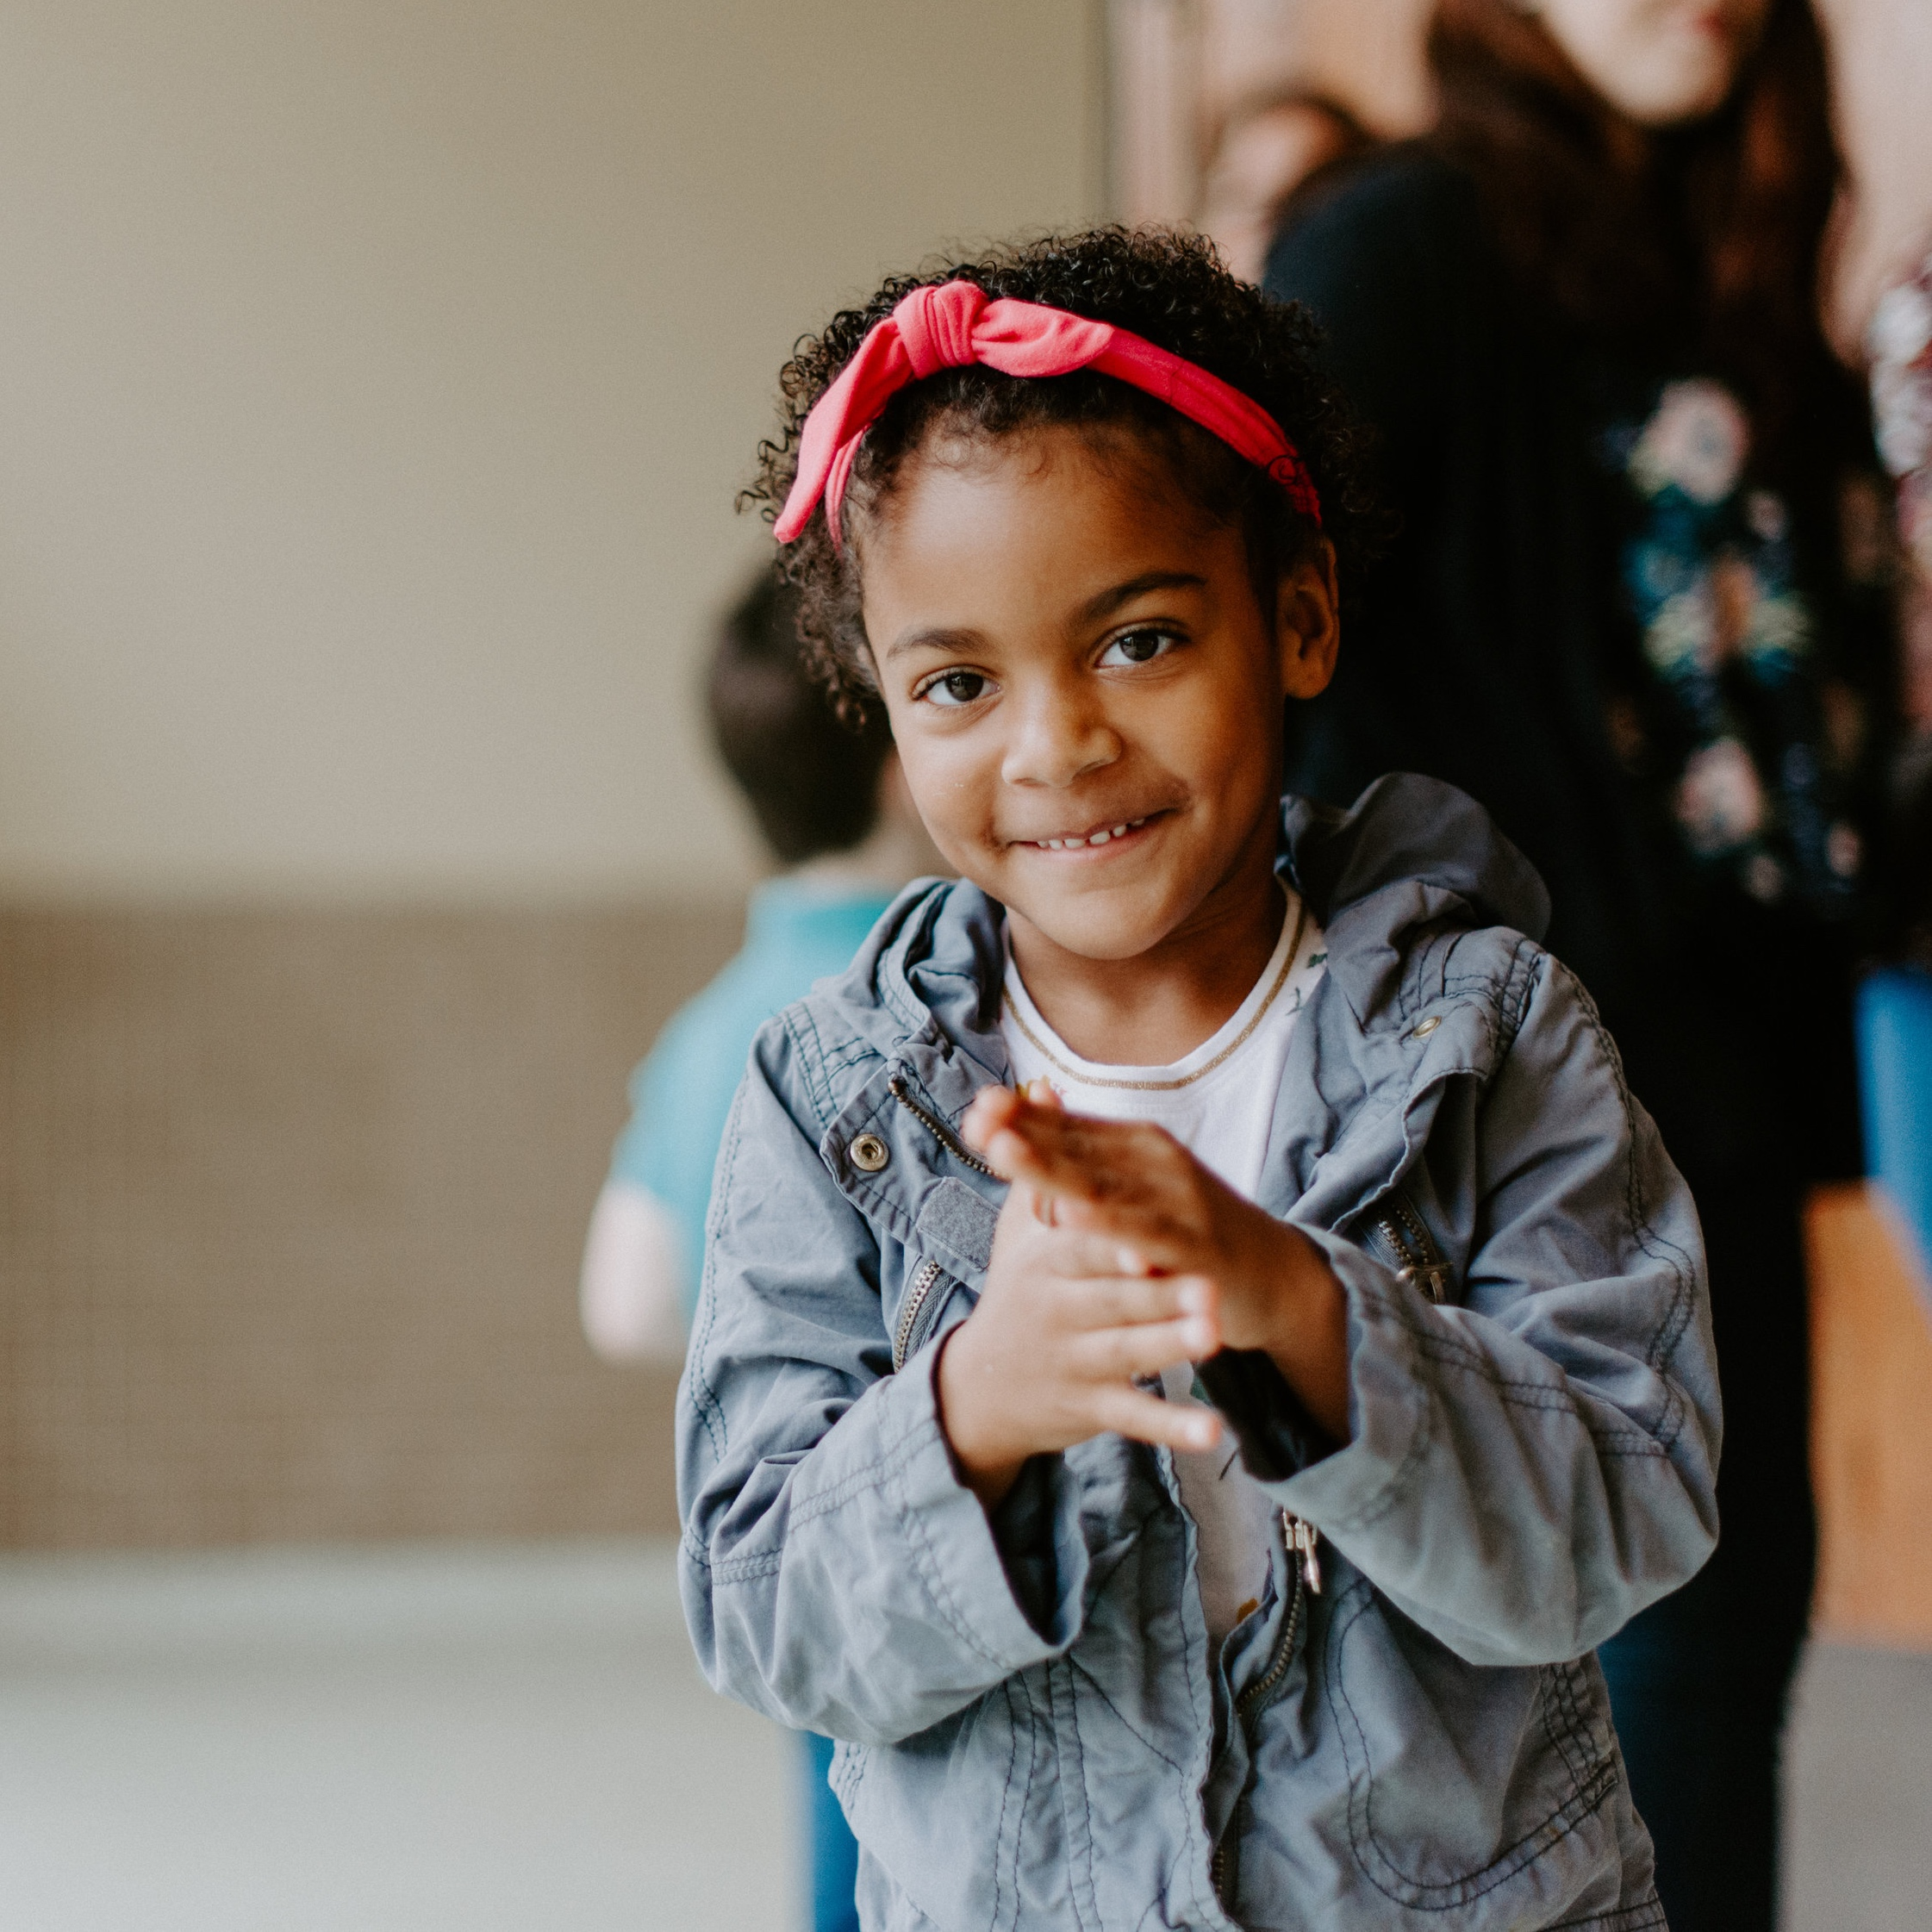 Colonial Kids Age Groups - Little Legends [2s - 3s]Go straight to class upon arrivalLittle Arrows [Pre-K - Kindergarten]Dismissed after worship for classArrows [1st- 2nd Grade]Dismissed after worship for classCrew [3rd - 5th grade]Dismissed after worship for class